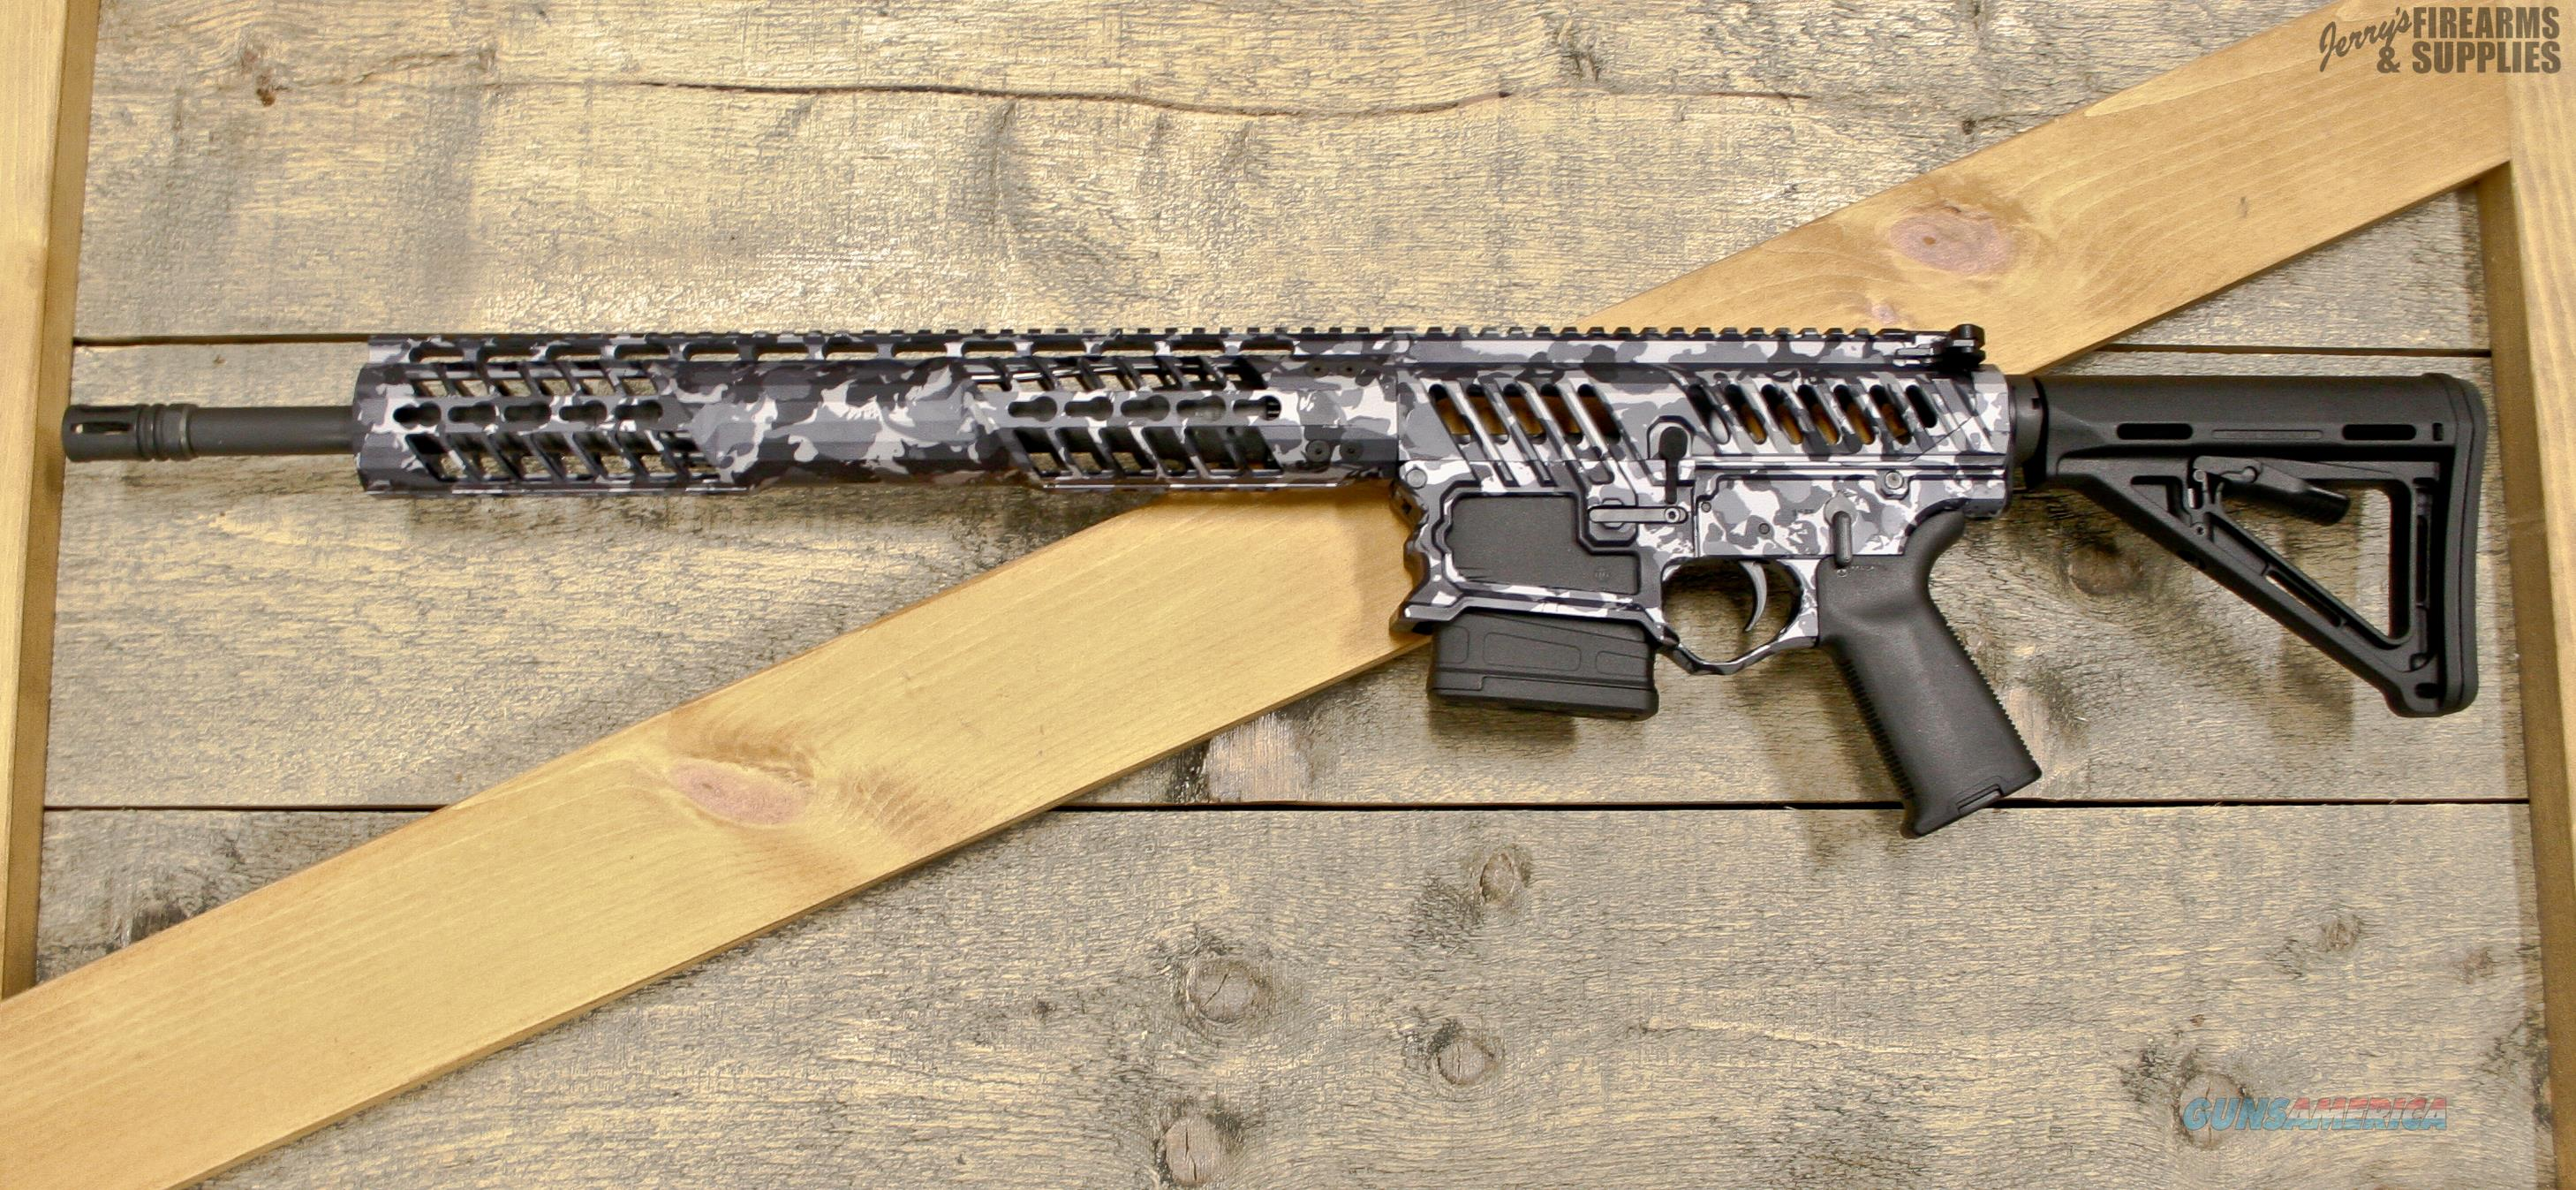 Urban Camo F-1 Firearms Skeletonized 308/AR-10 Tack Driver   Guns > Rifles > AR-15 Rifles - Small Manufacturers > Complete Rifle